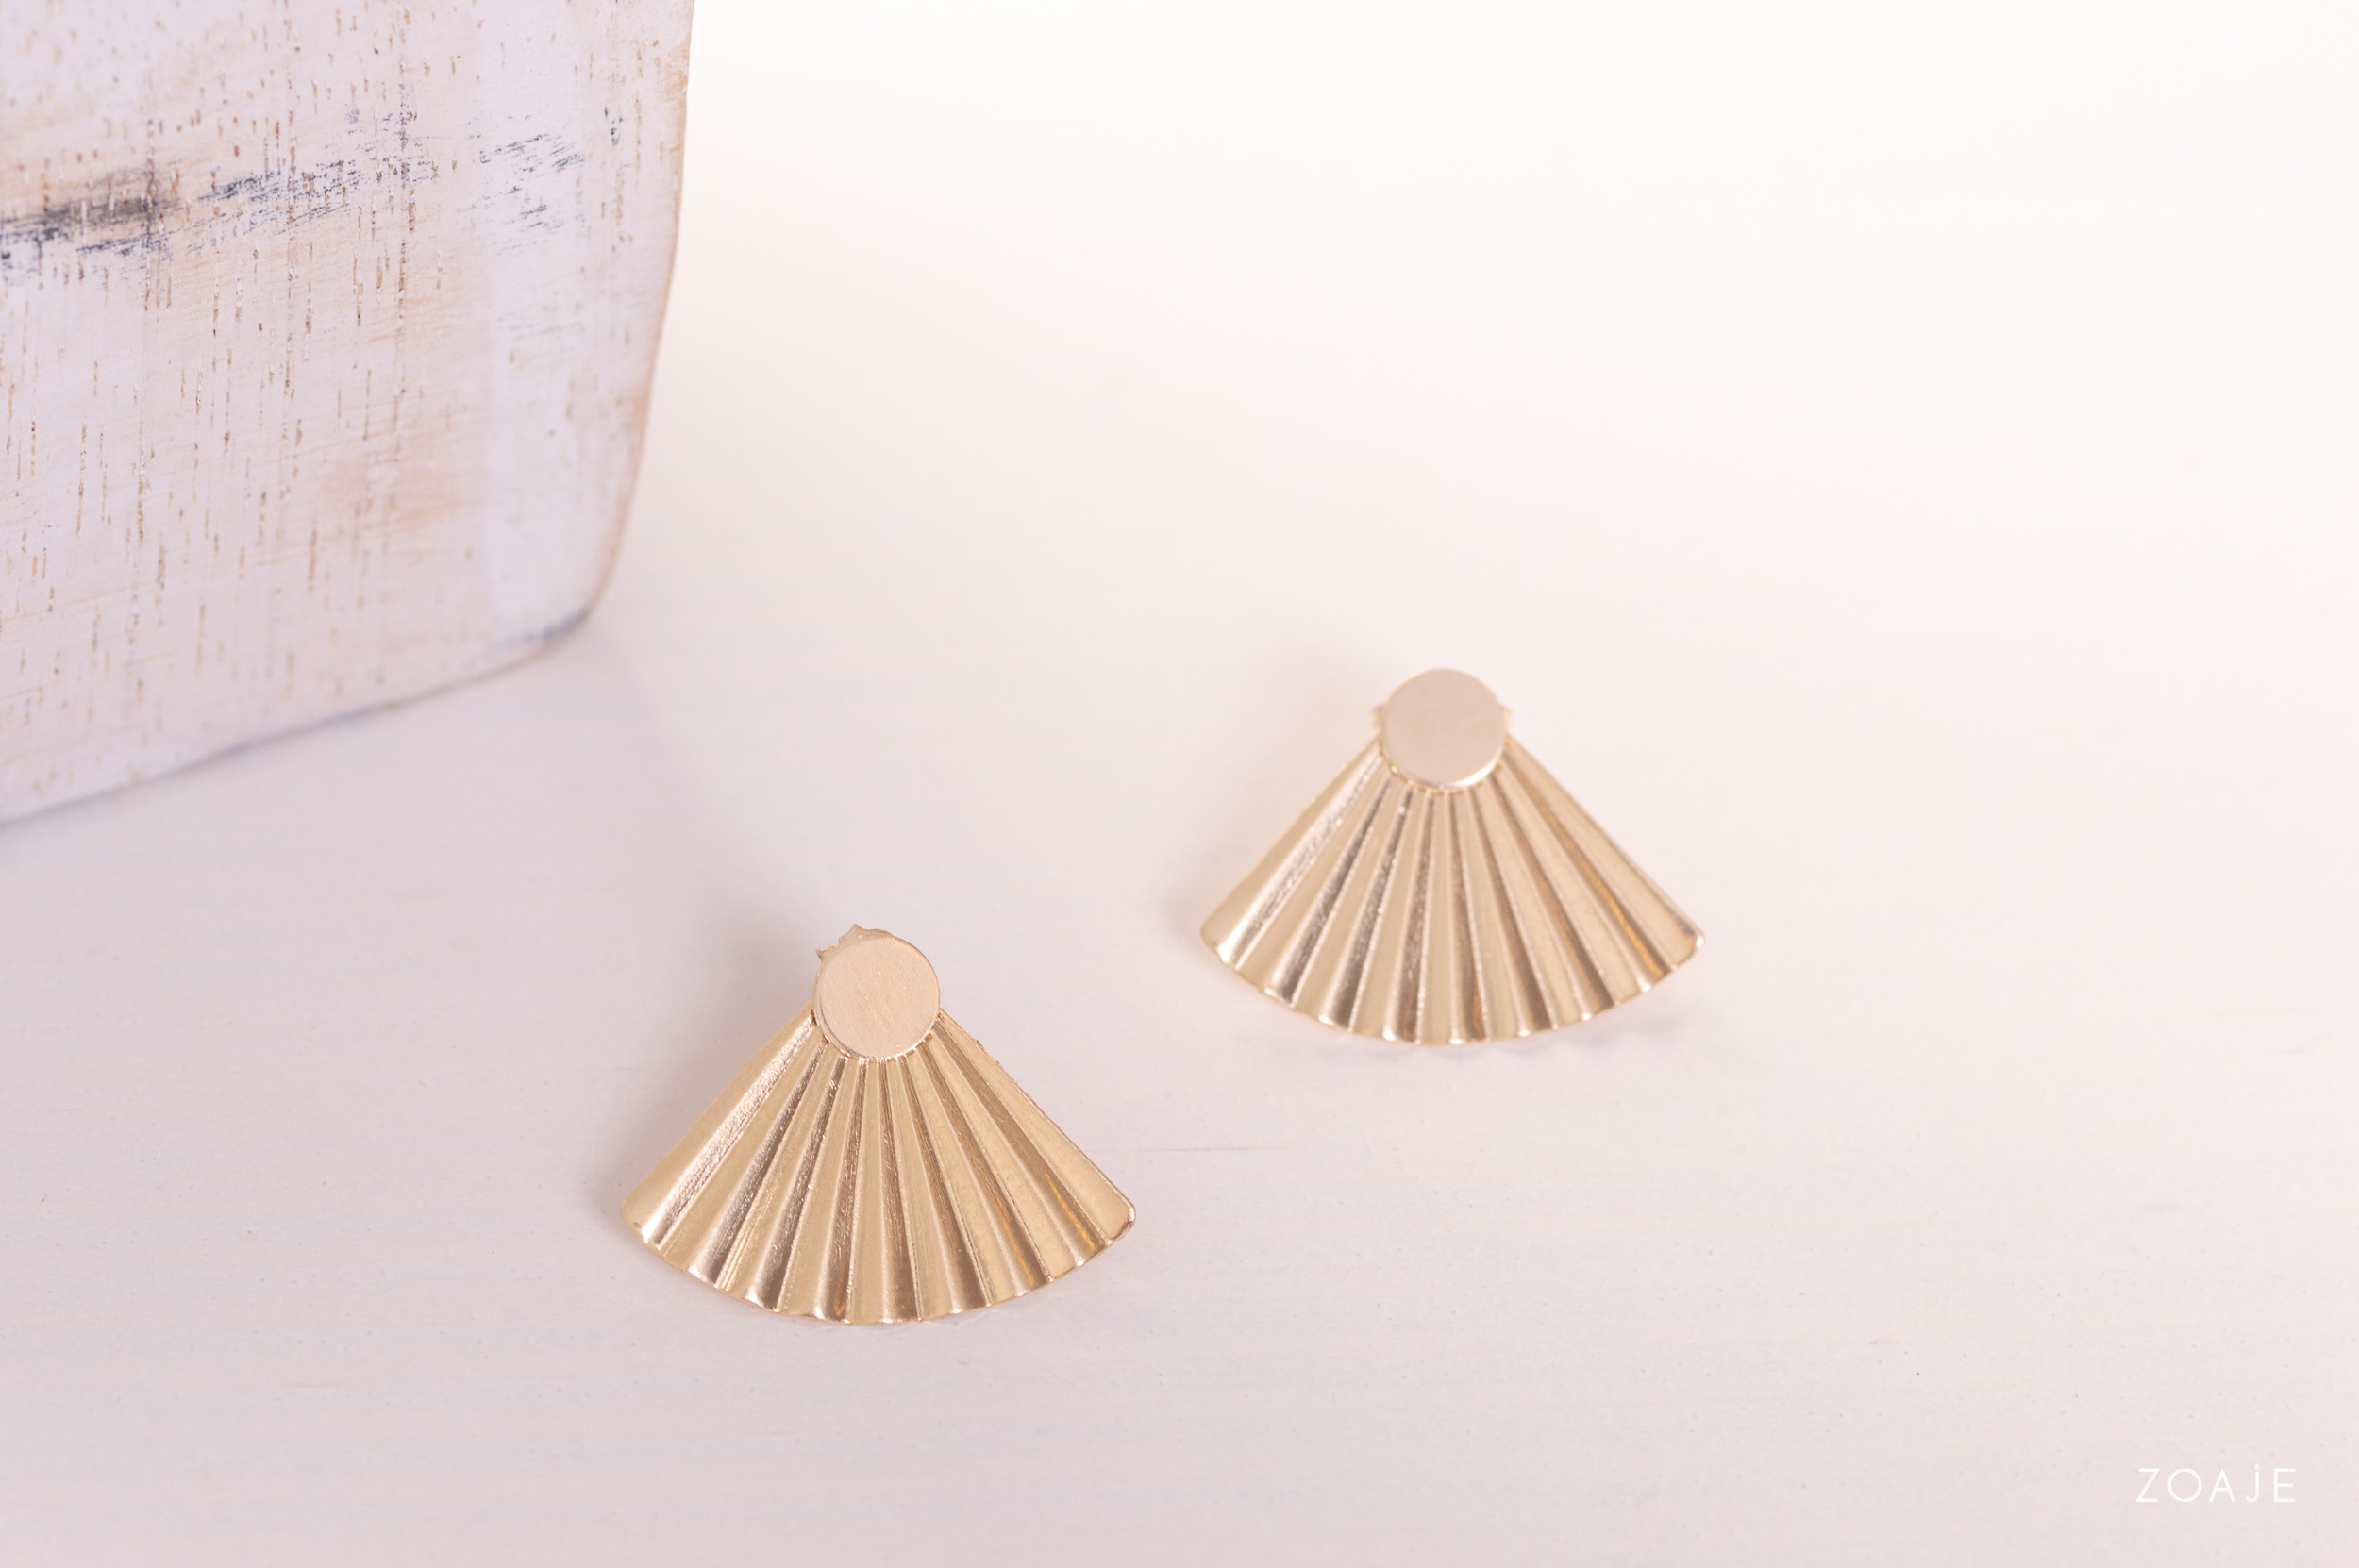 ZOAJE - SS18 WITHOUT MODEL-929.jpg